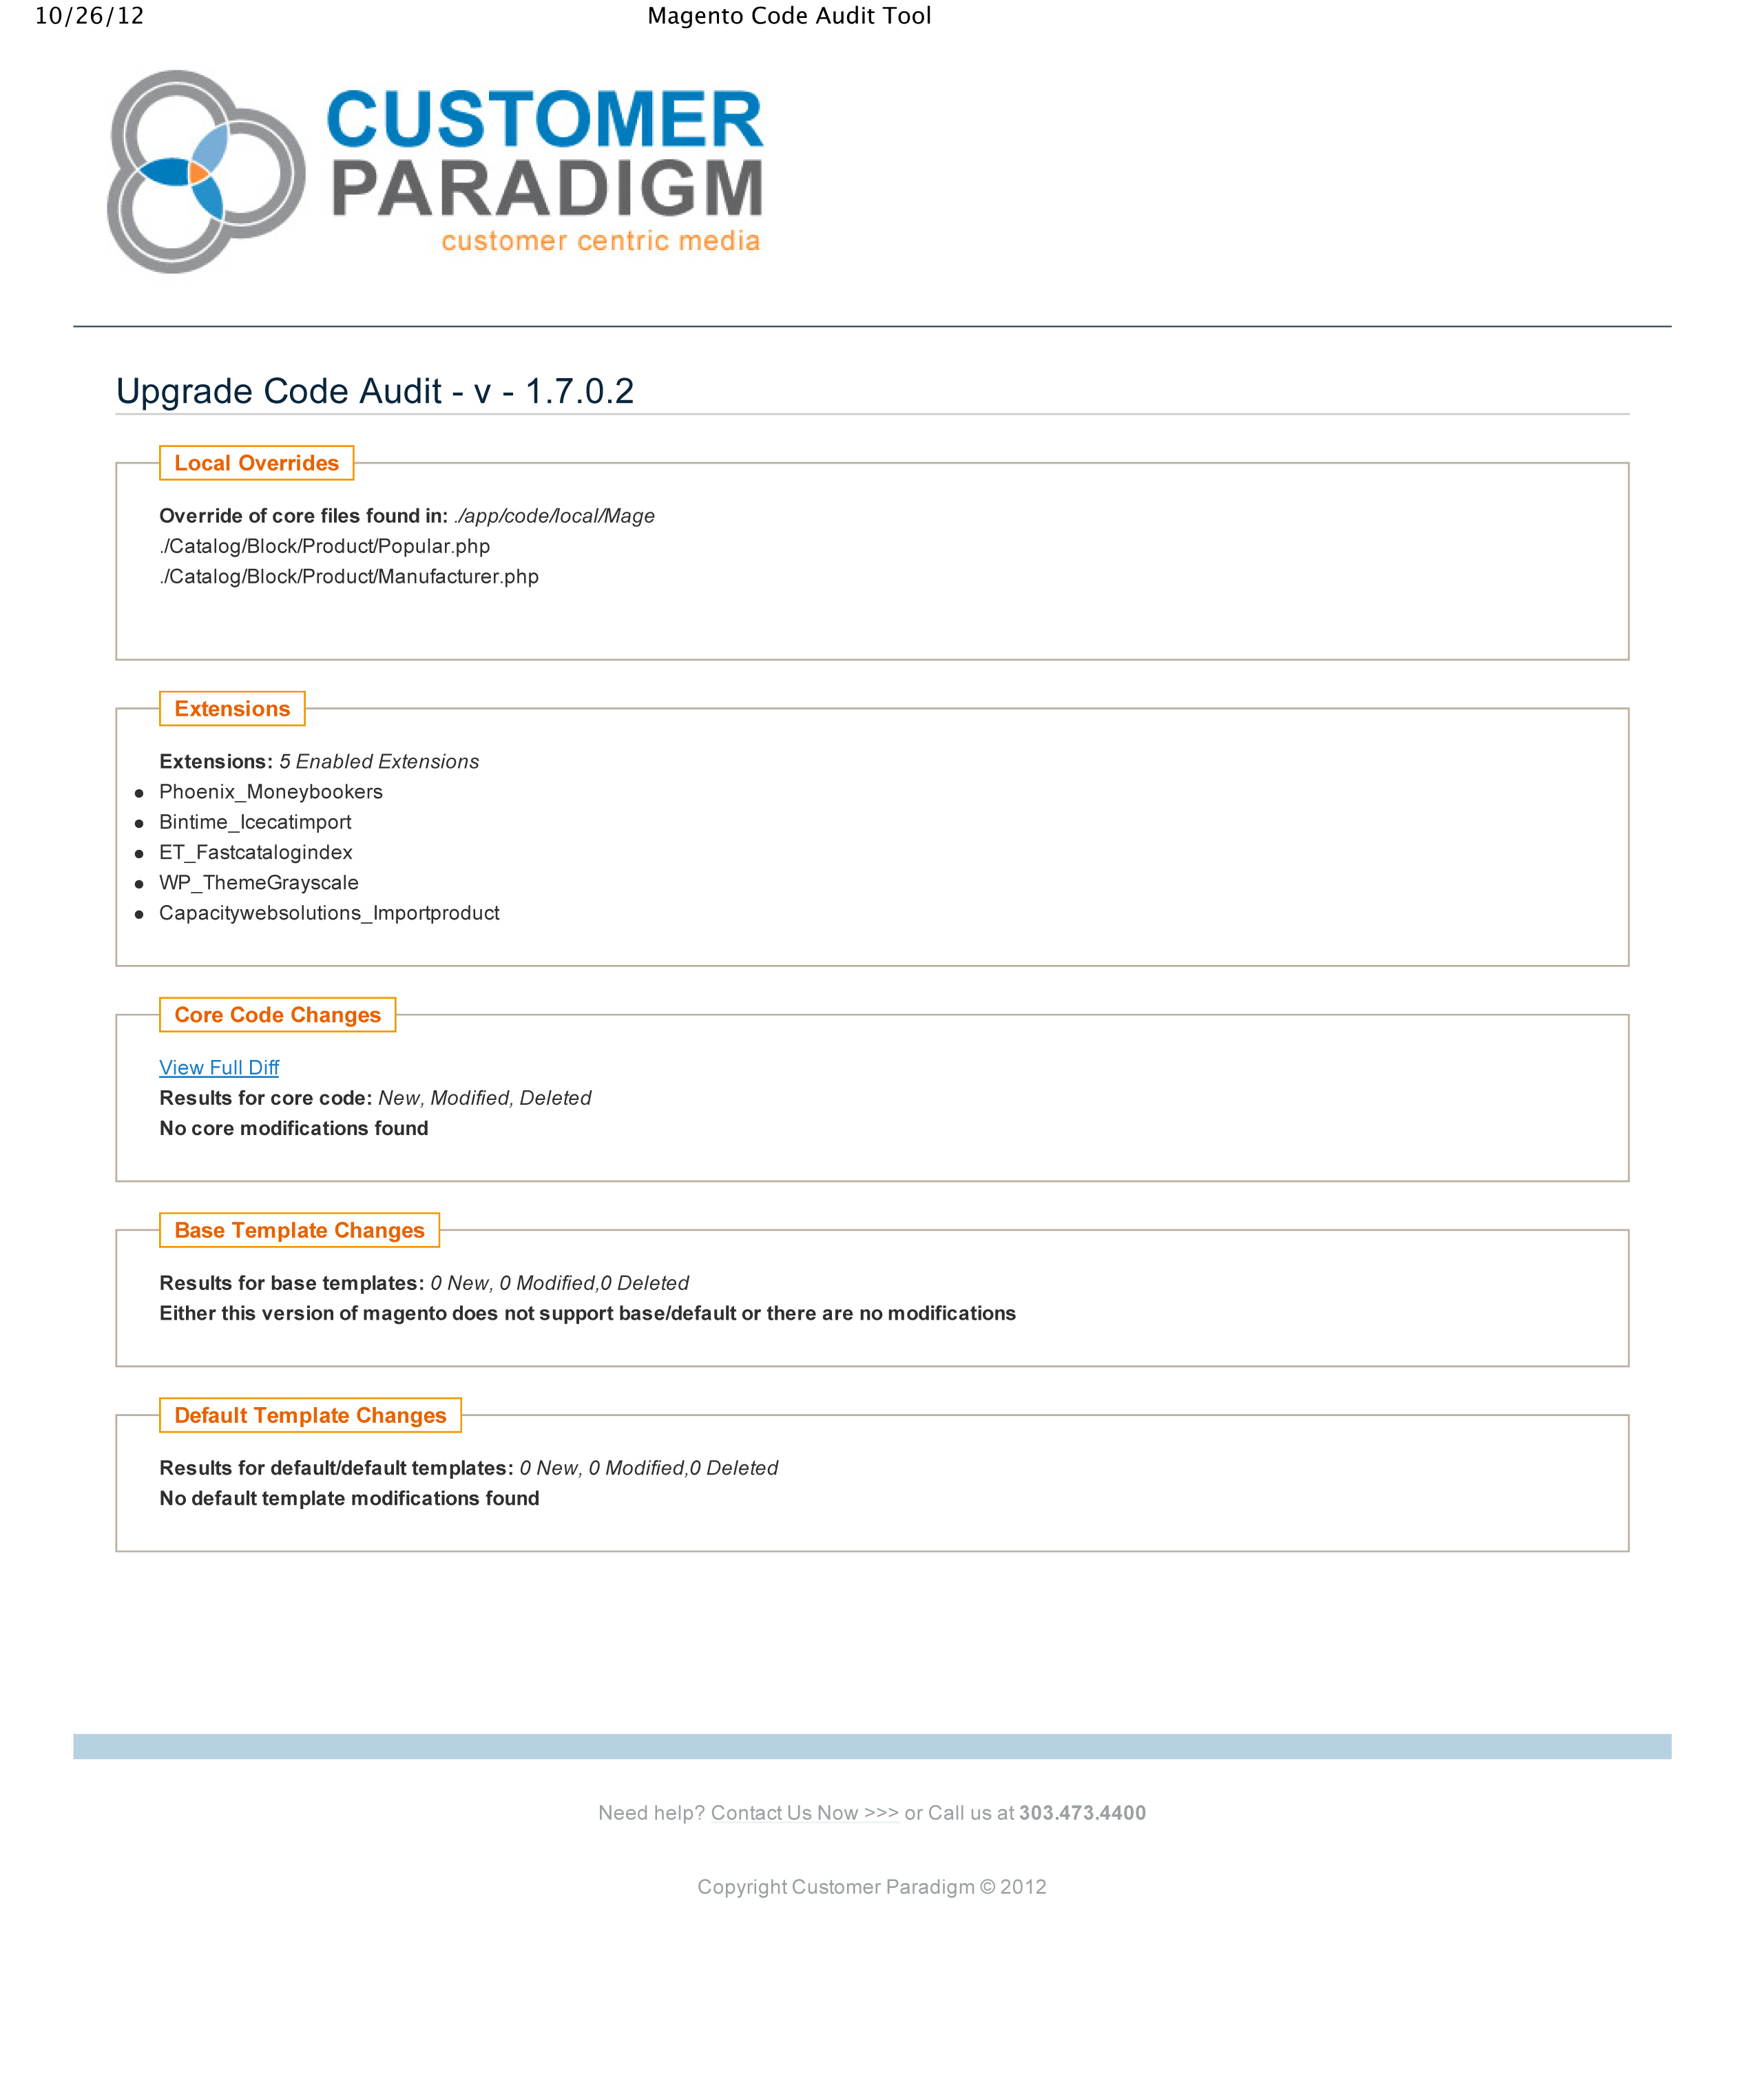 Audit Report Template Aradiotk Sample Magento Code Audit Report Audit  Report Template Audit Report Template Word Audit Report Template Word  Audit Template Word